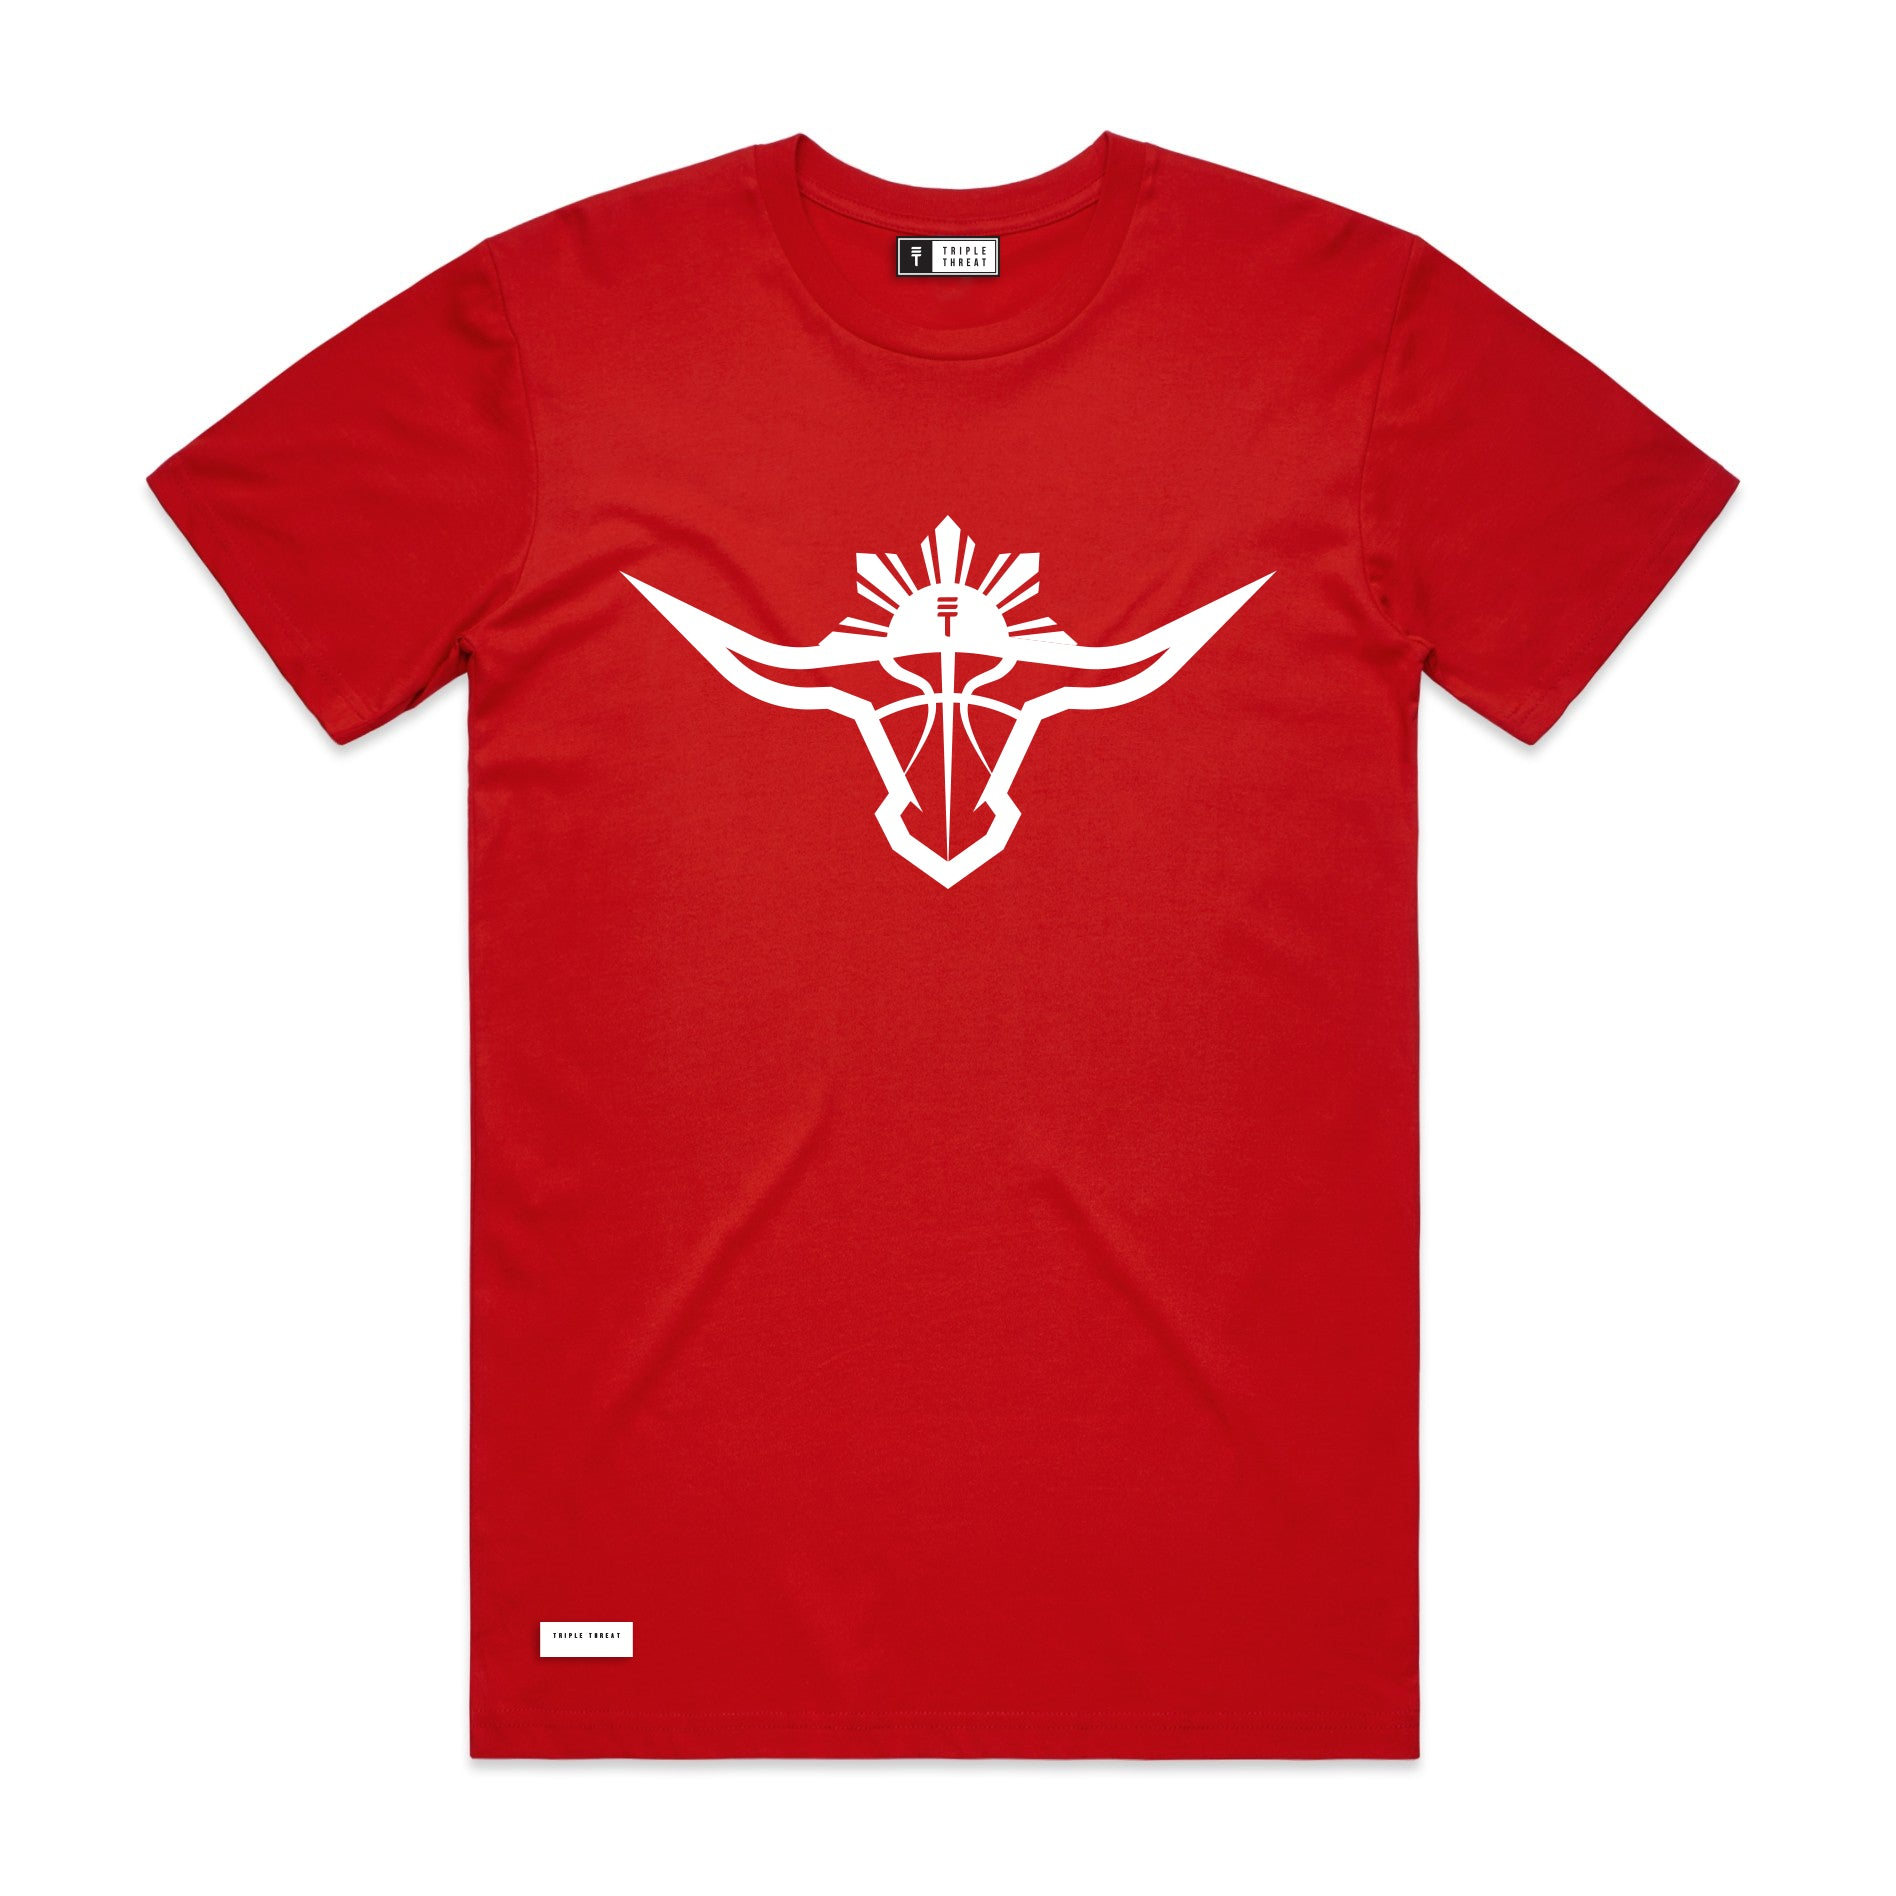 BUFFALO T-SHIRT - RED